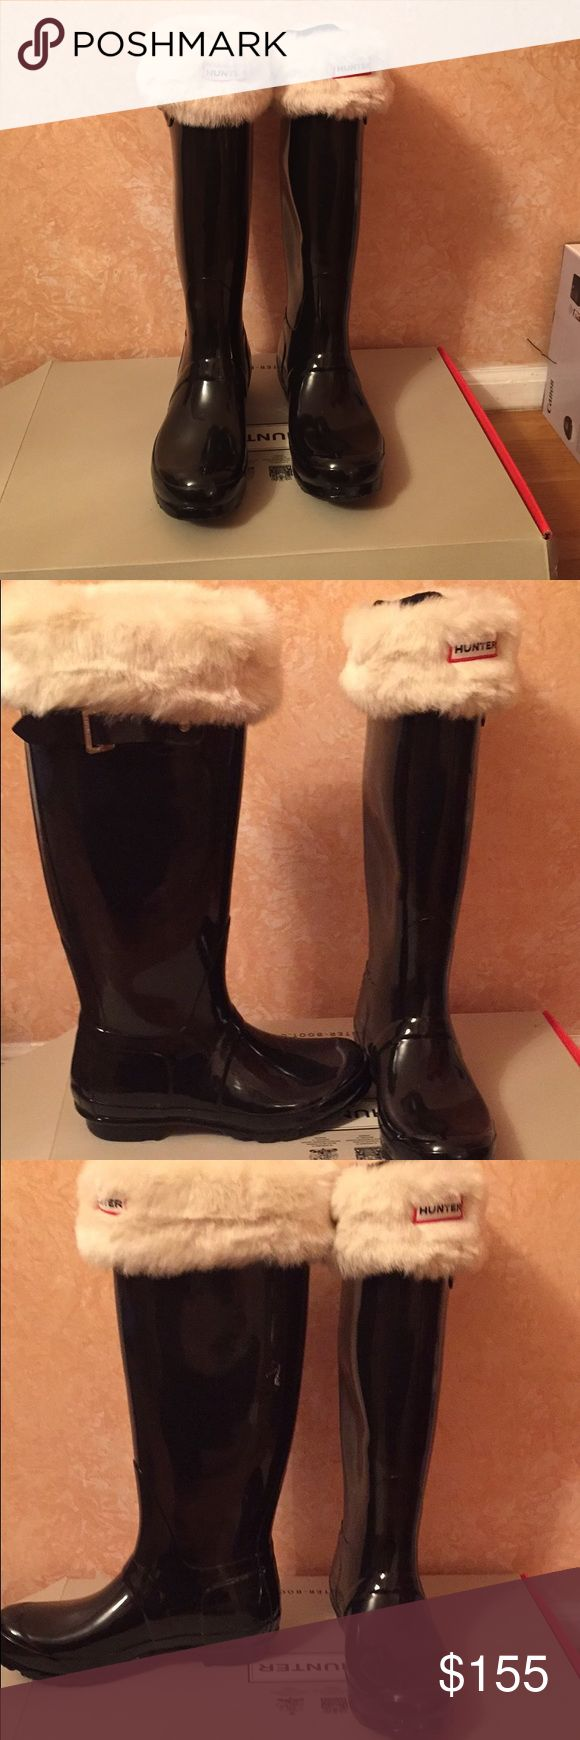 Brand new hunter boots with socks! Brand New Hunter Rain Boots With Fur Boot Socks In Box And Ready To Go! Hunter Shoes Winter & Rain Boots